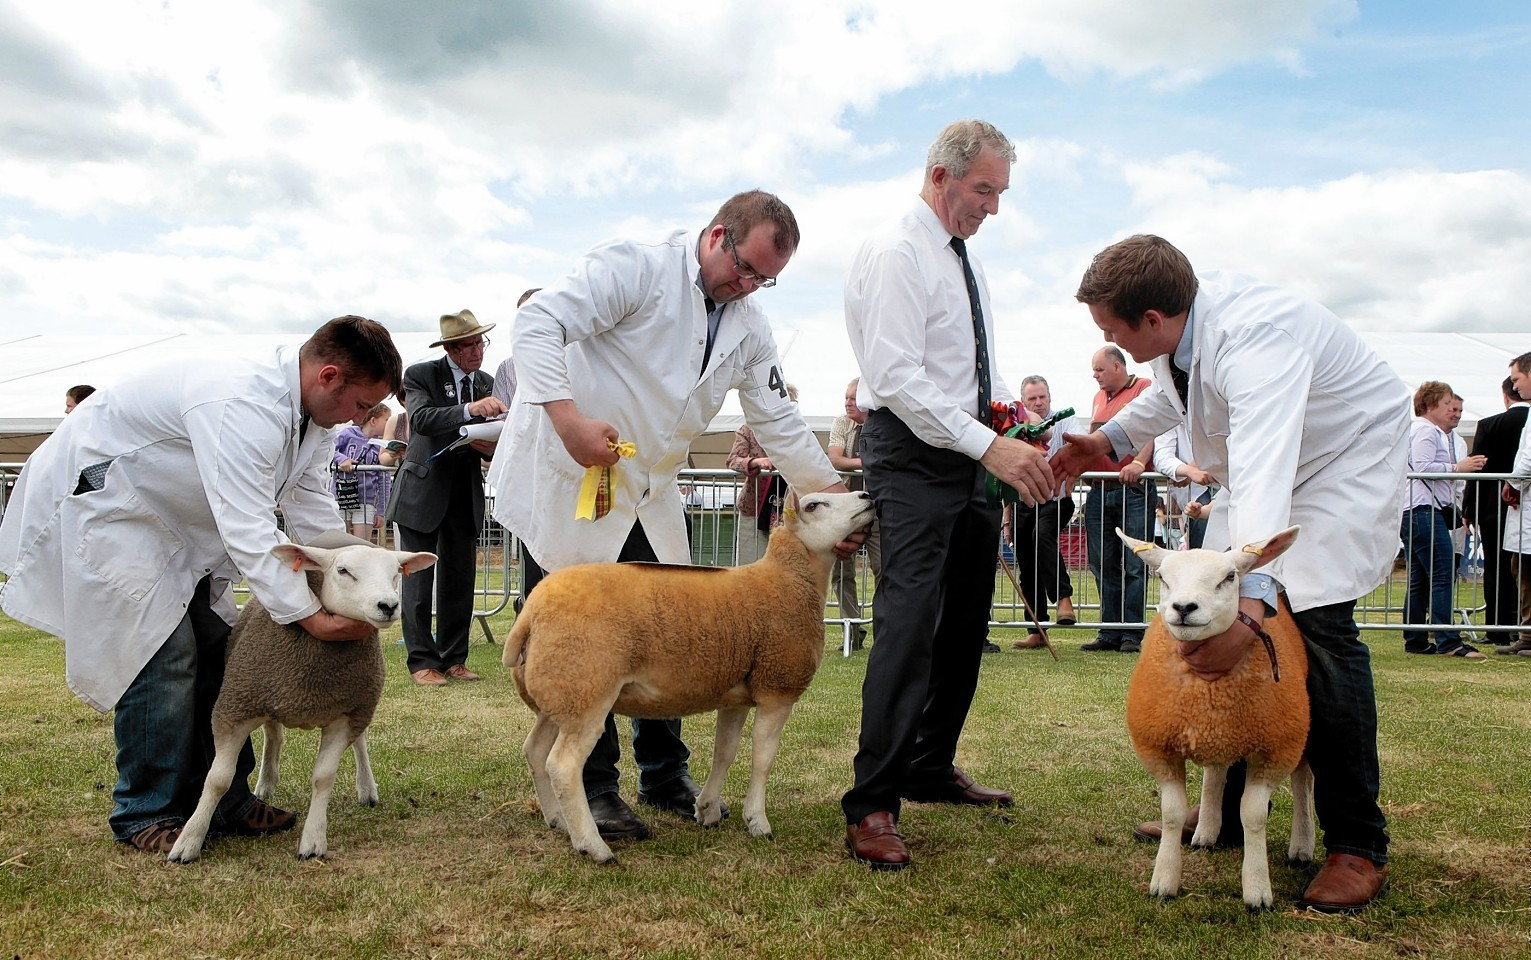 Sheep being shown at this year's Royal Highland Show